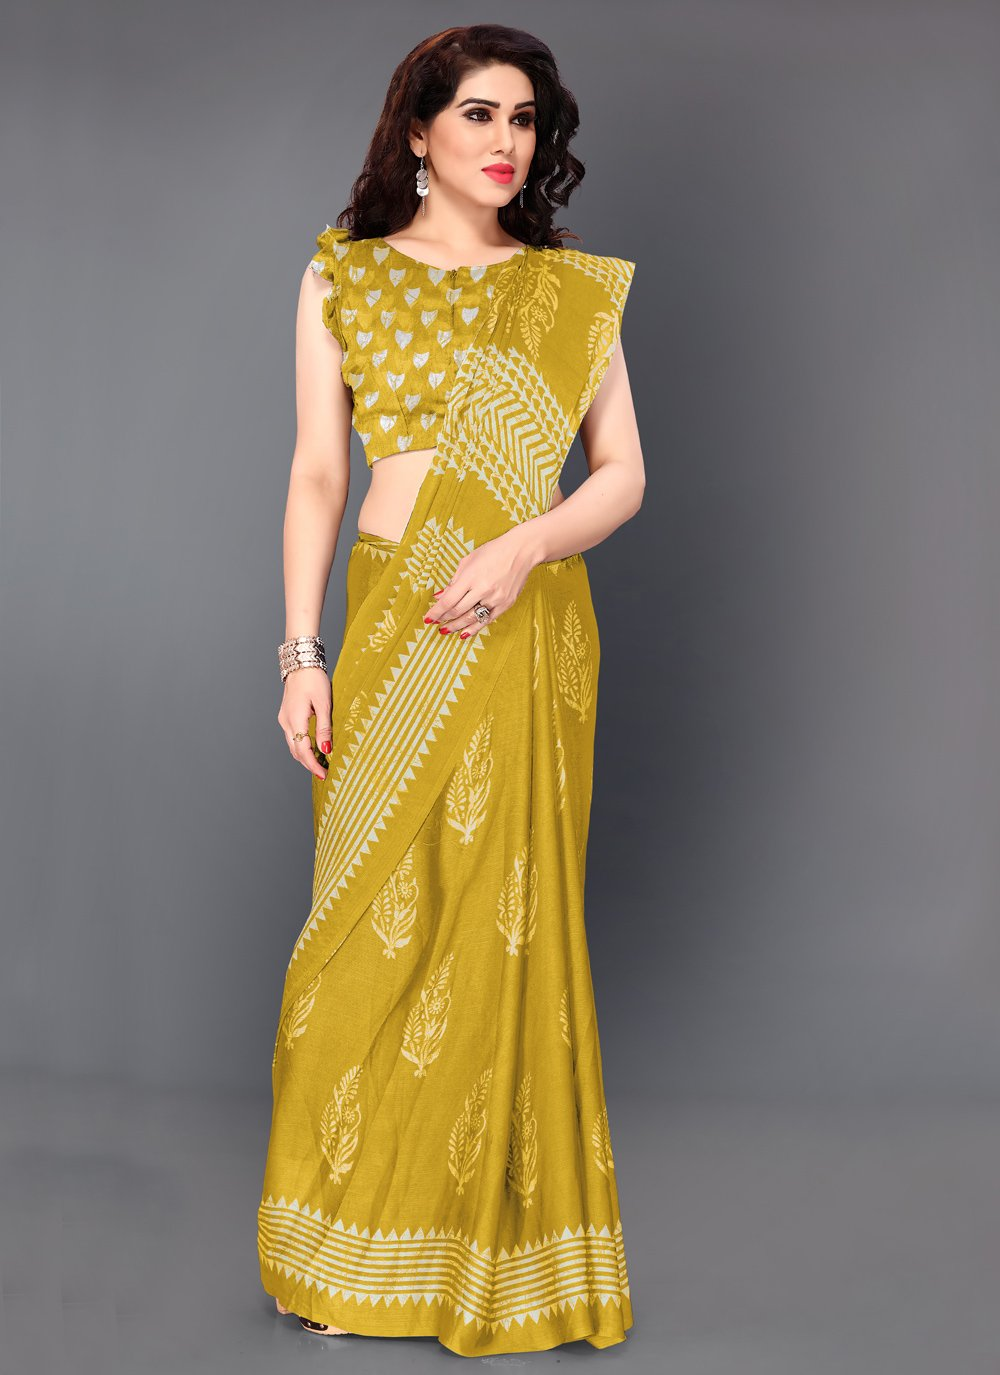 Faux Chiffon Printed Bollywood Saree